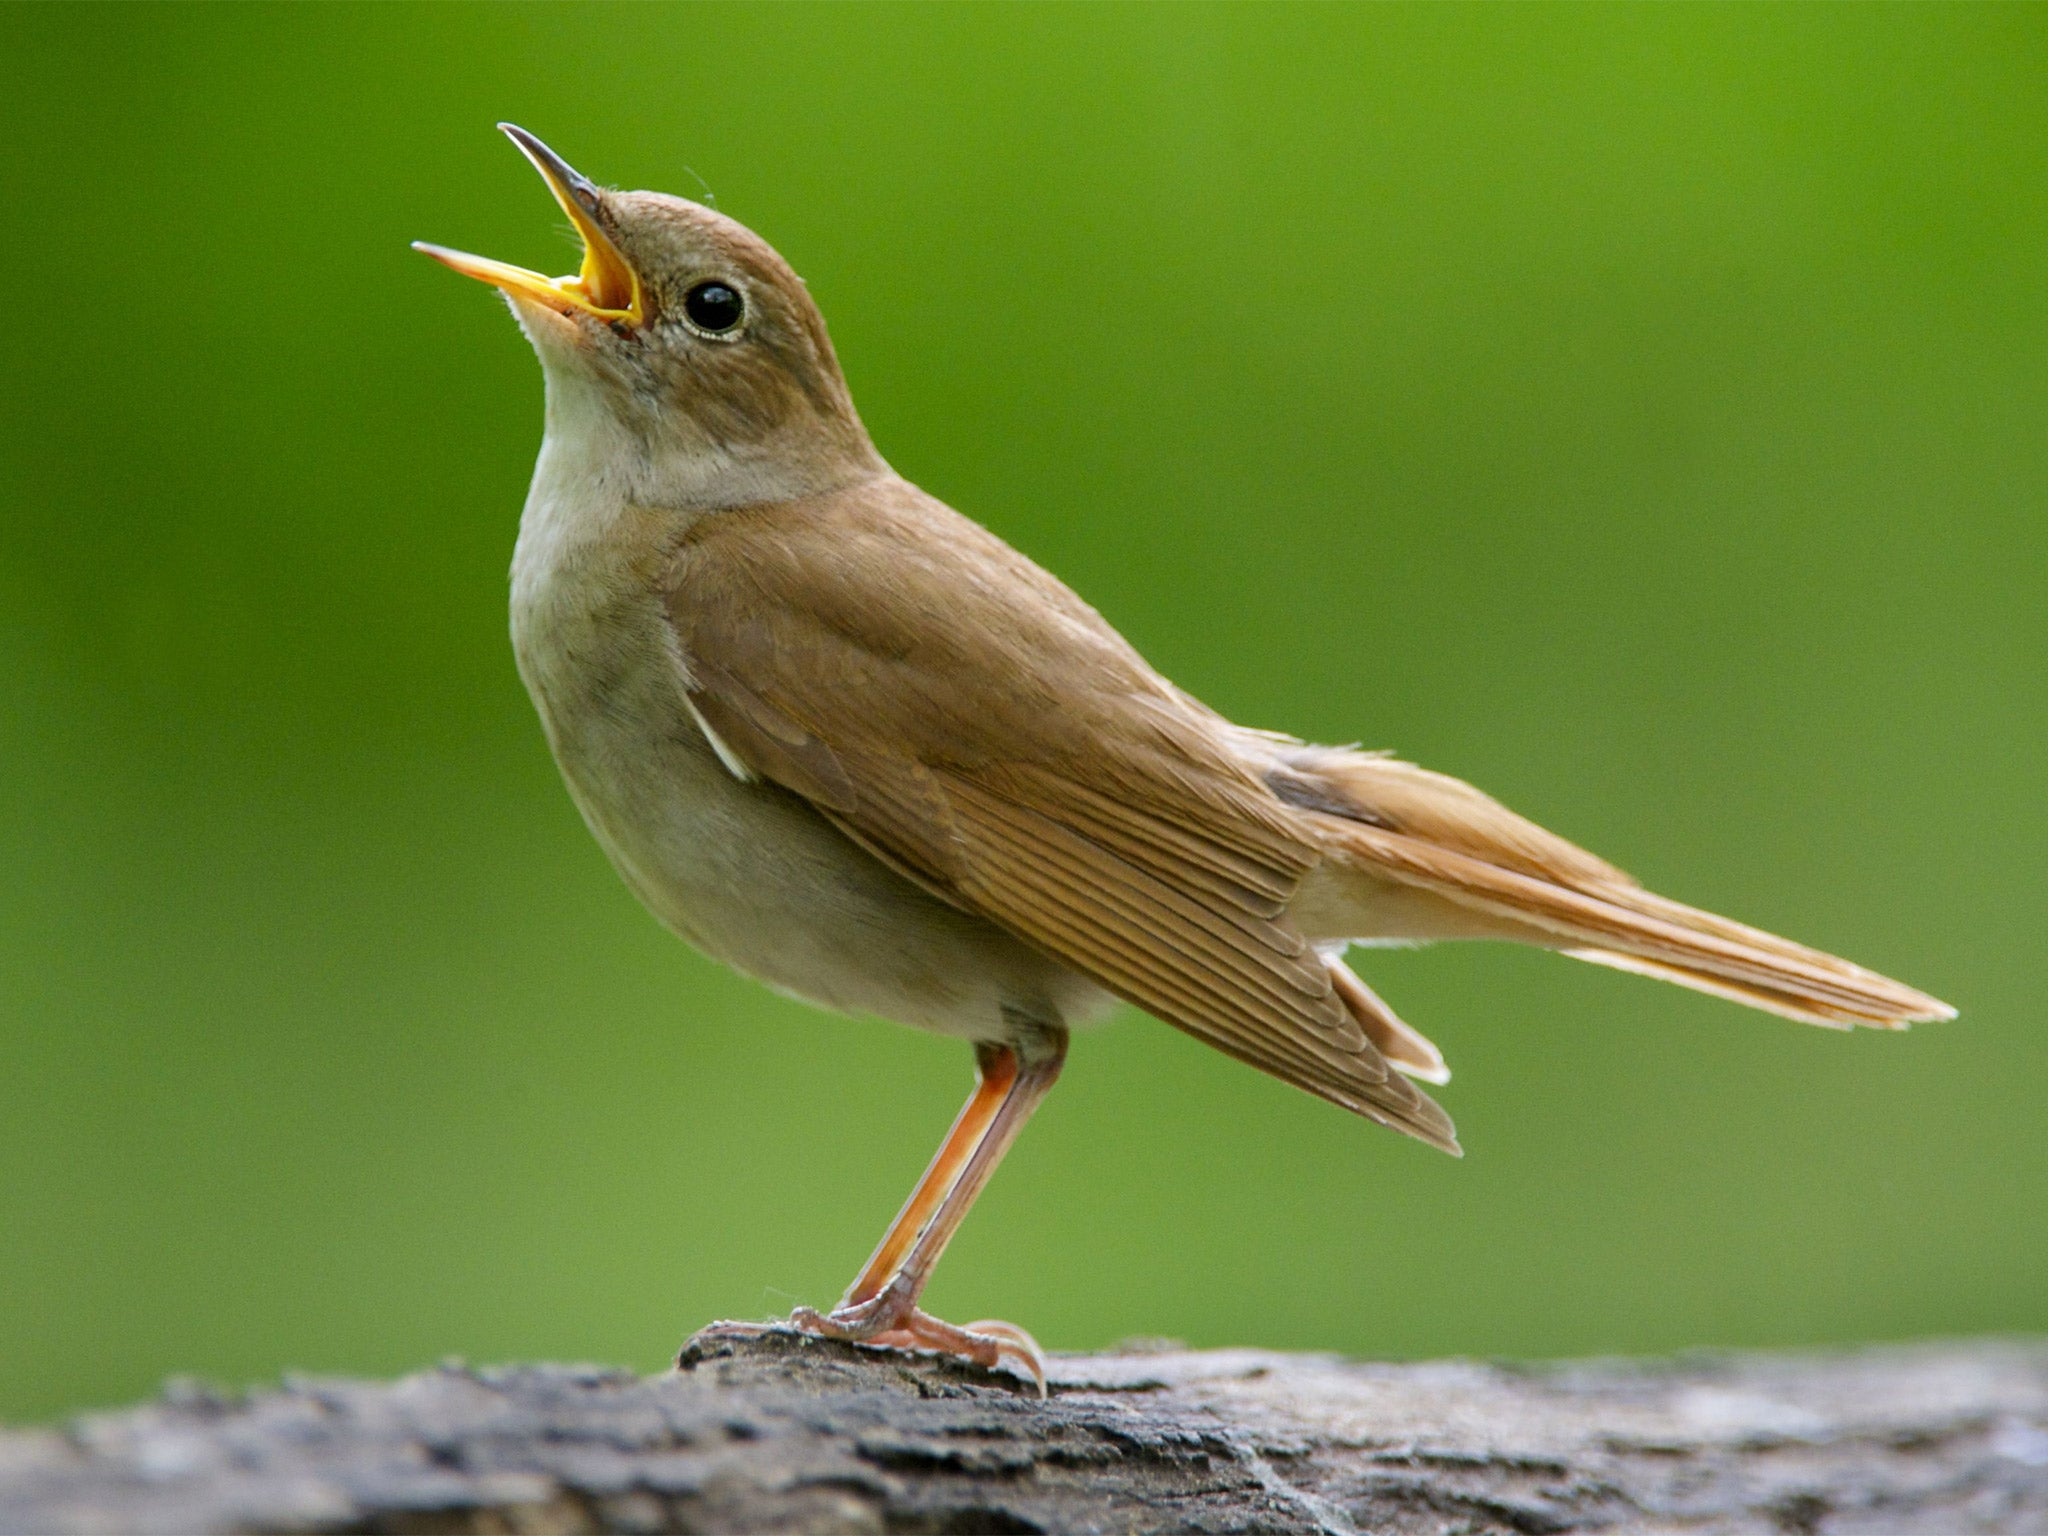 male nightingales sing complex songs to show females they